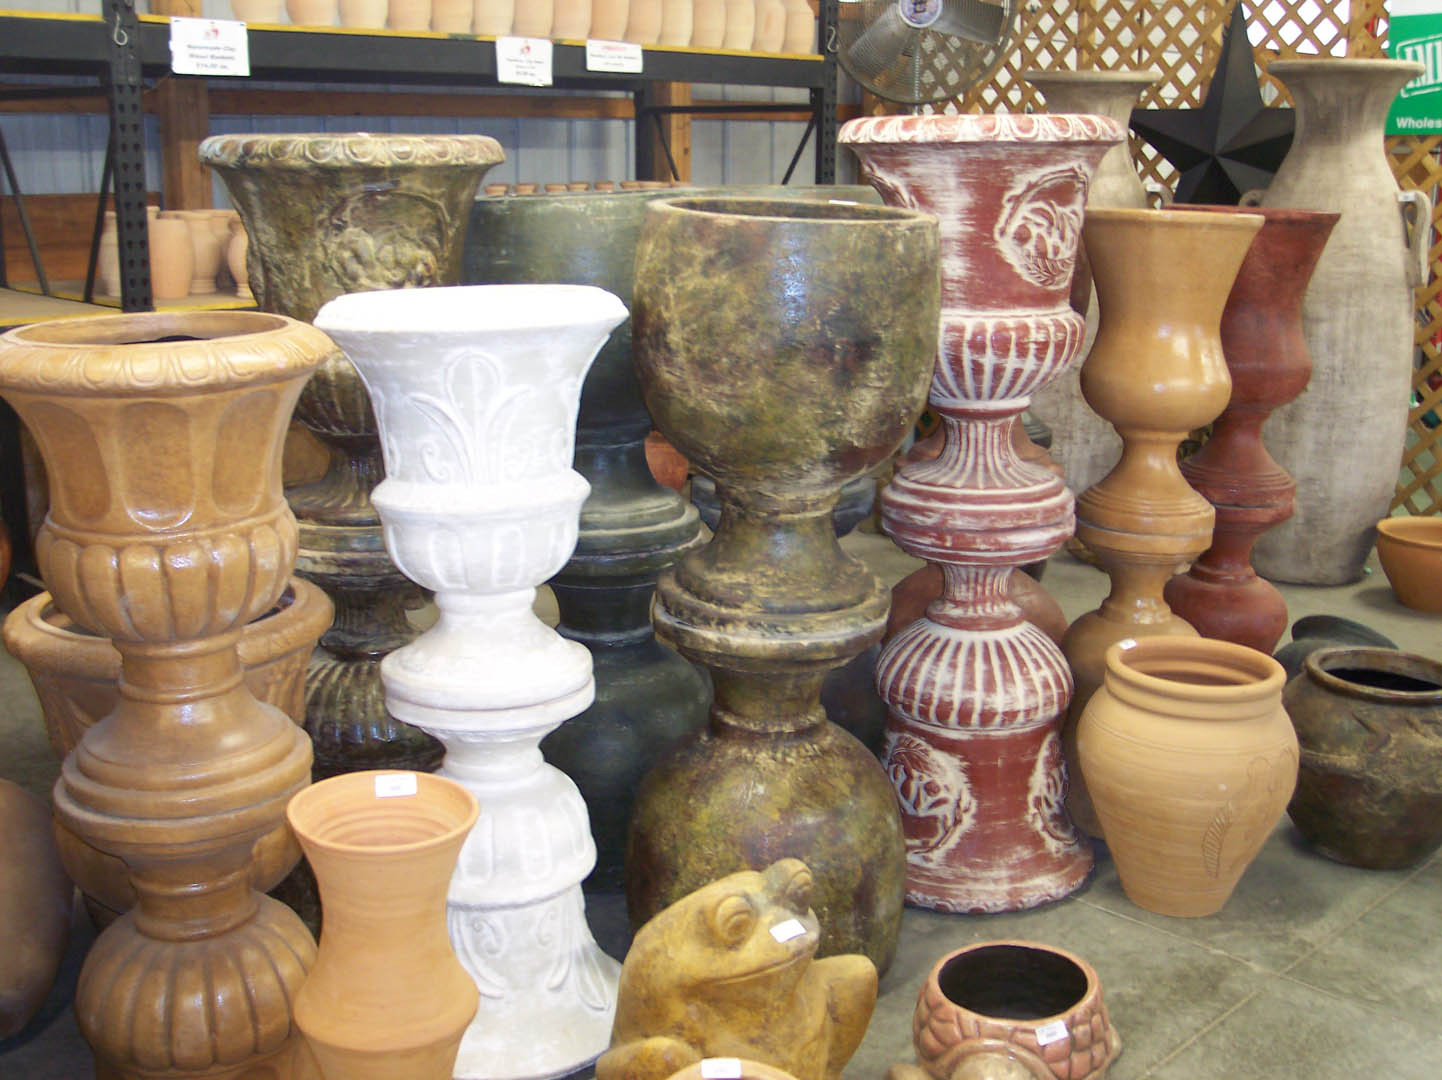 roseville antique vases of zanesville pottery your exclusive pottery retailer with regard to items selling now on ebay a